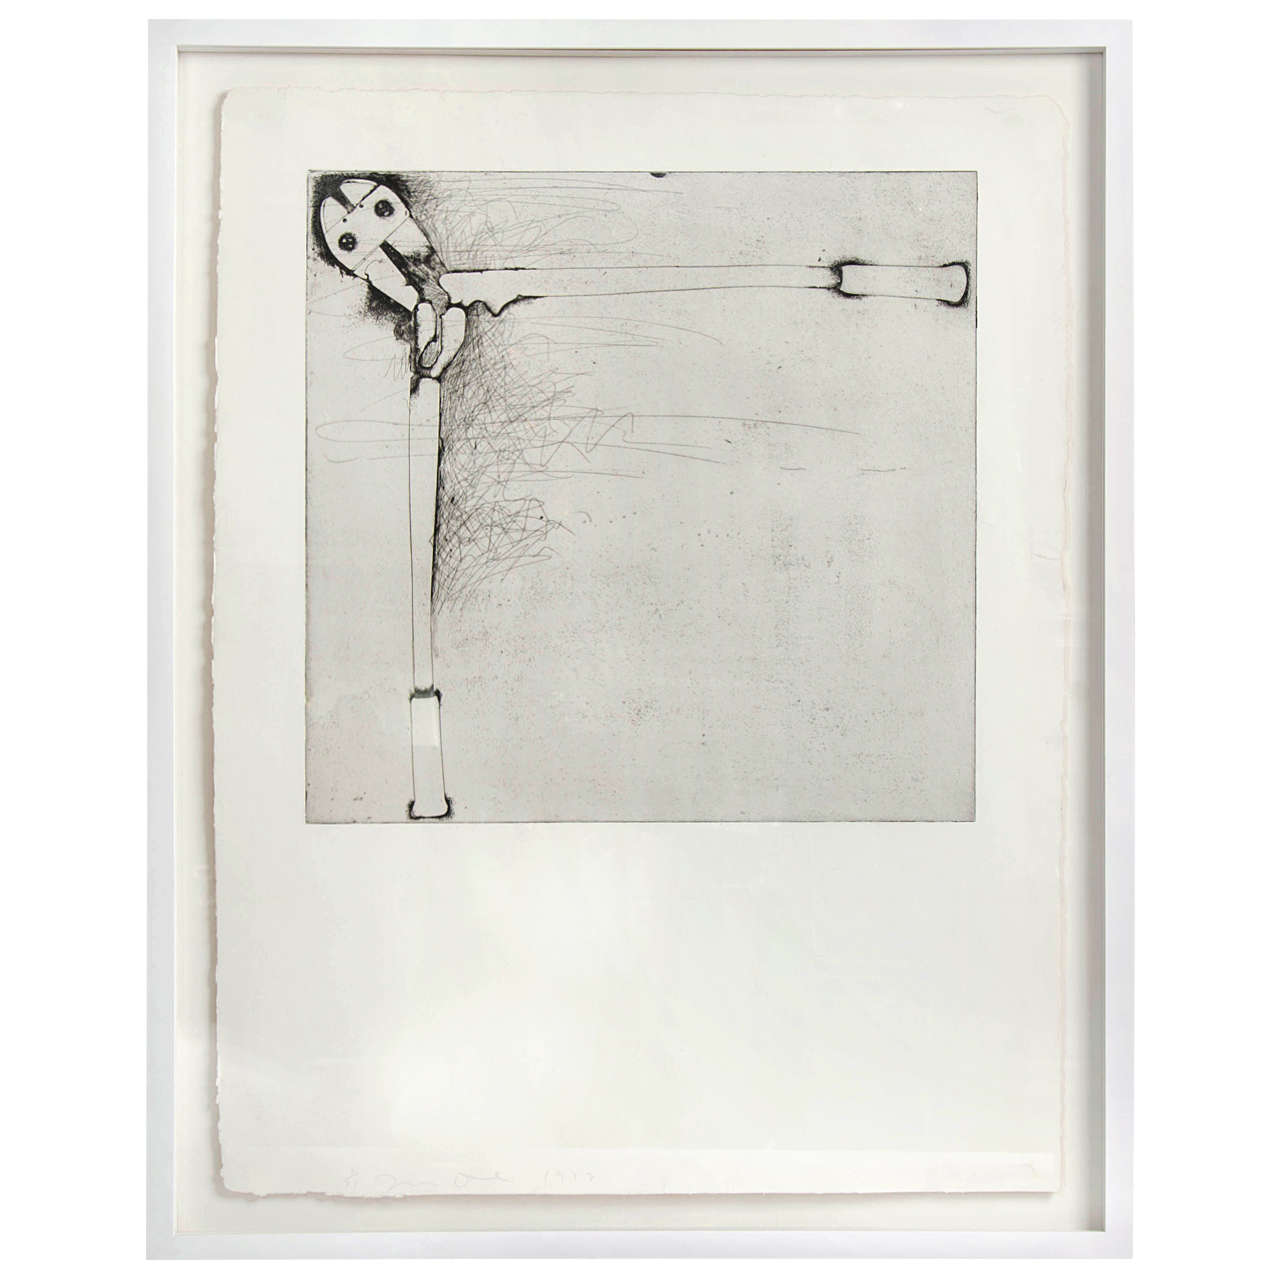 Bolt Cutters Etching by Jim Dine For Sale at 1stdibs